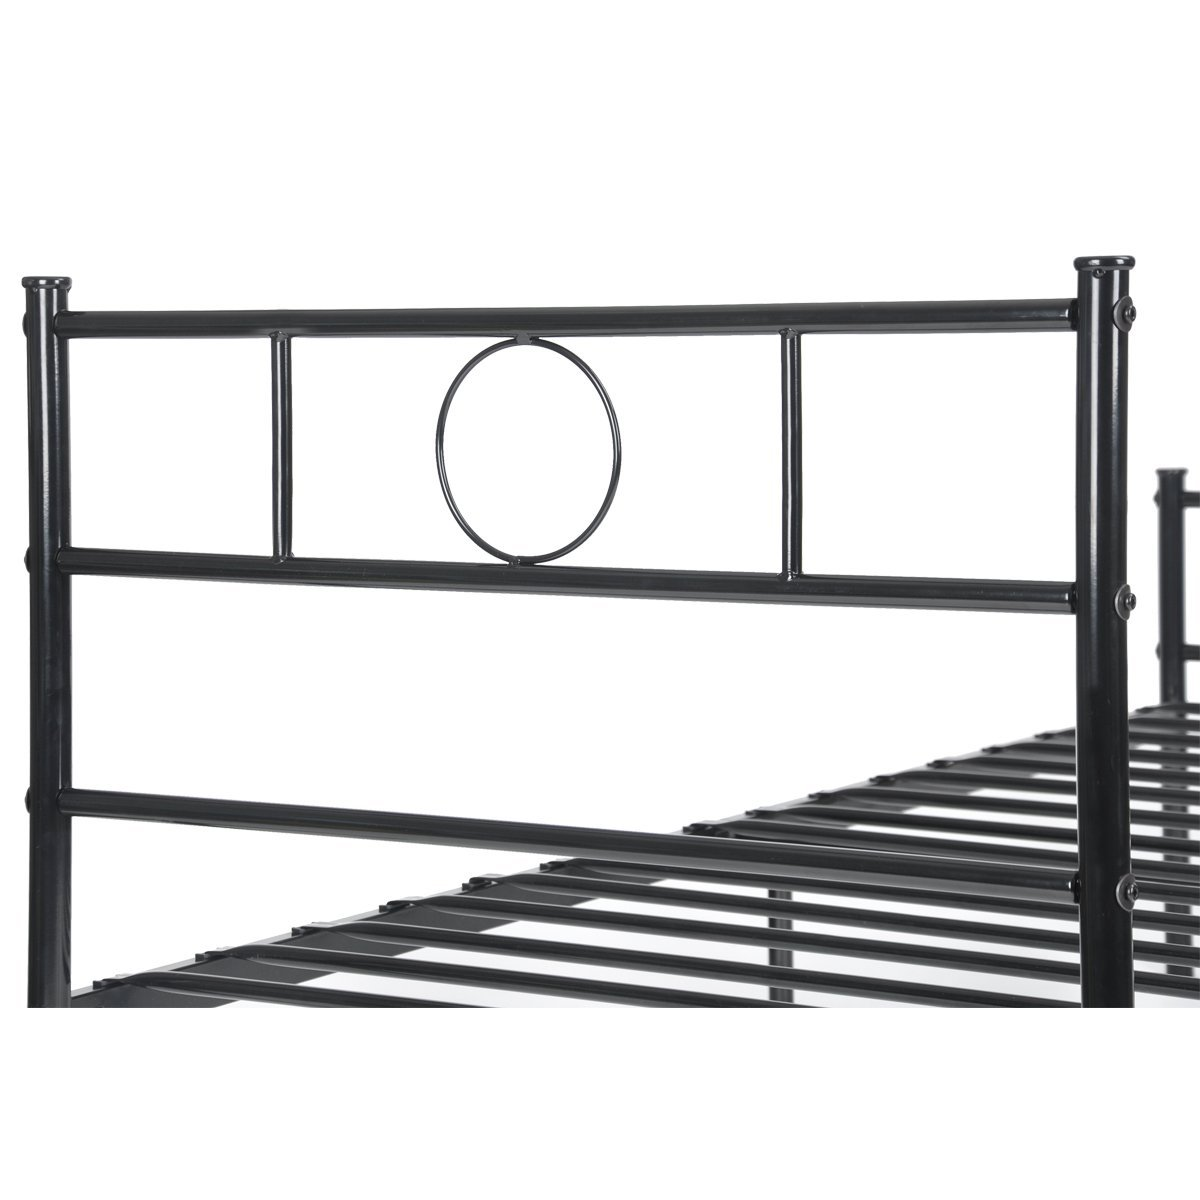 Twin Size Bed Frame Stable Metal Slat Support No Boxspring